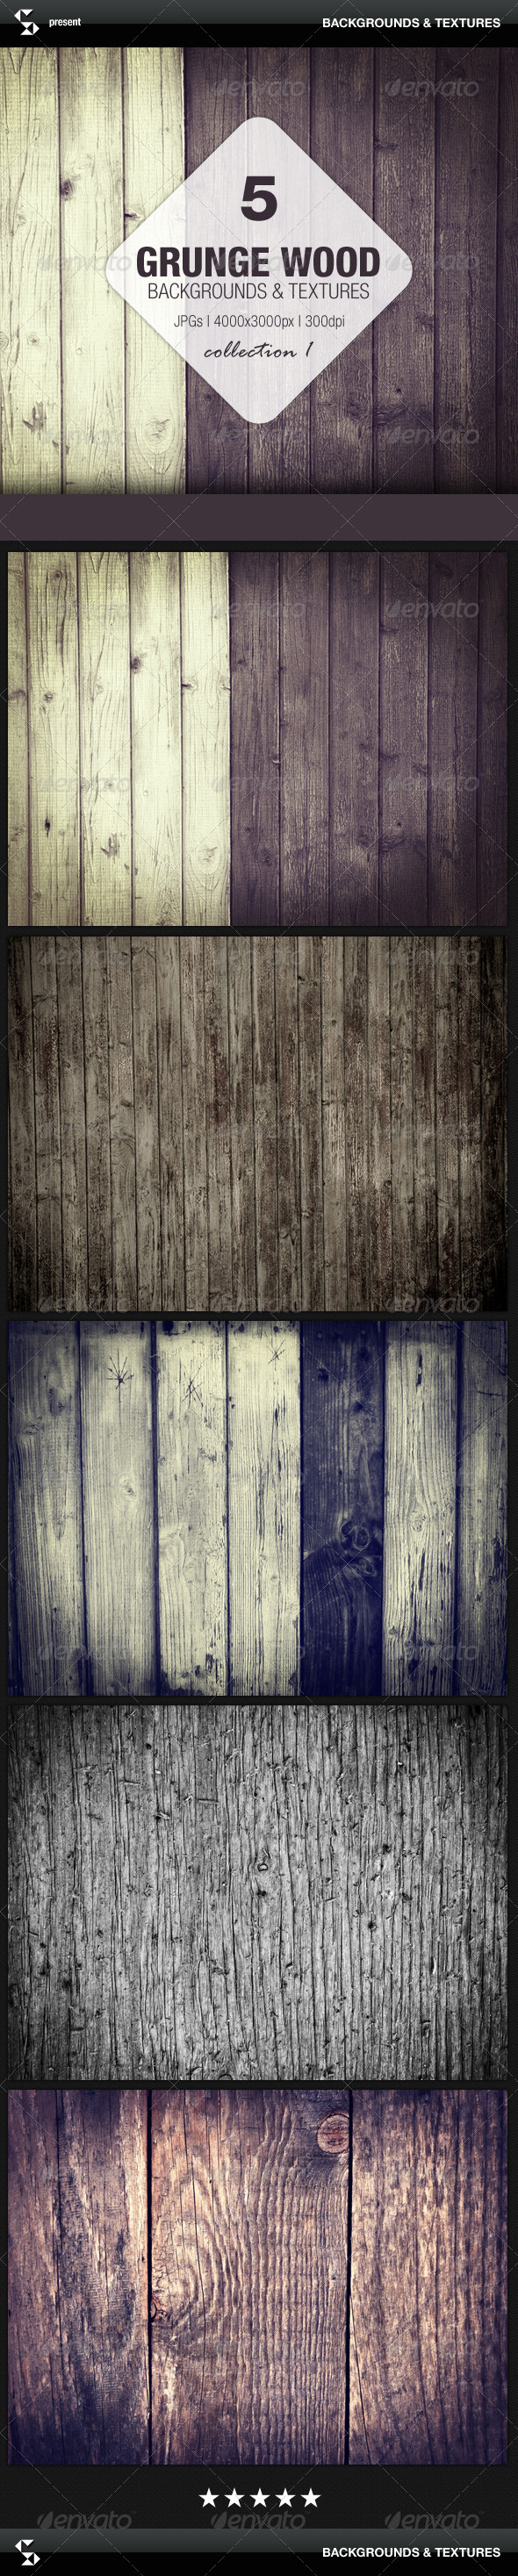 Grunge Wood Backgrounds - Collection 1 - Nature Backgrounds